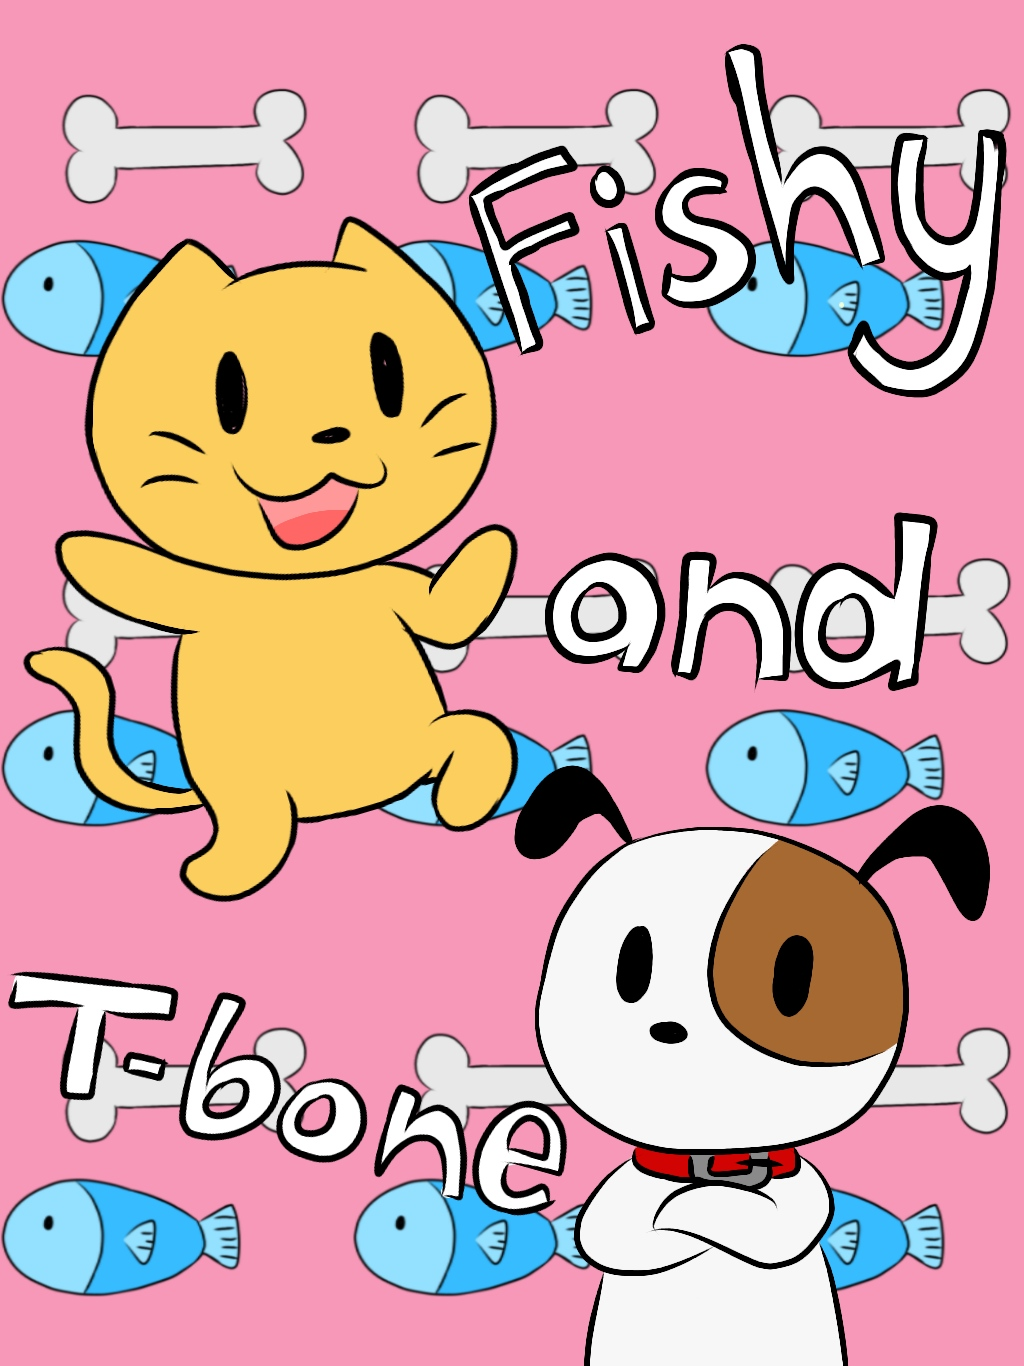 Fishy and T-bone